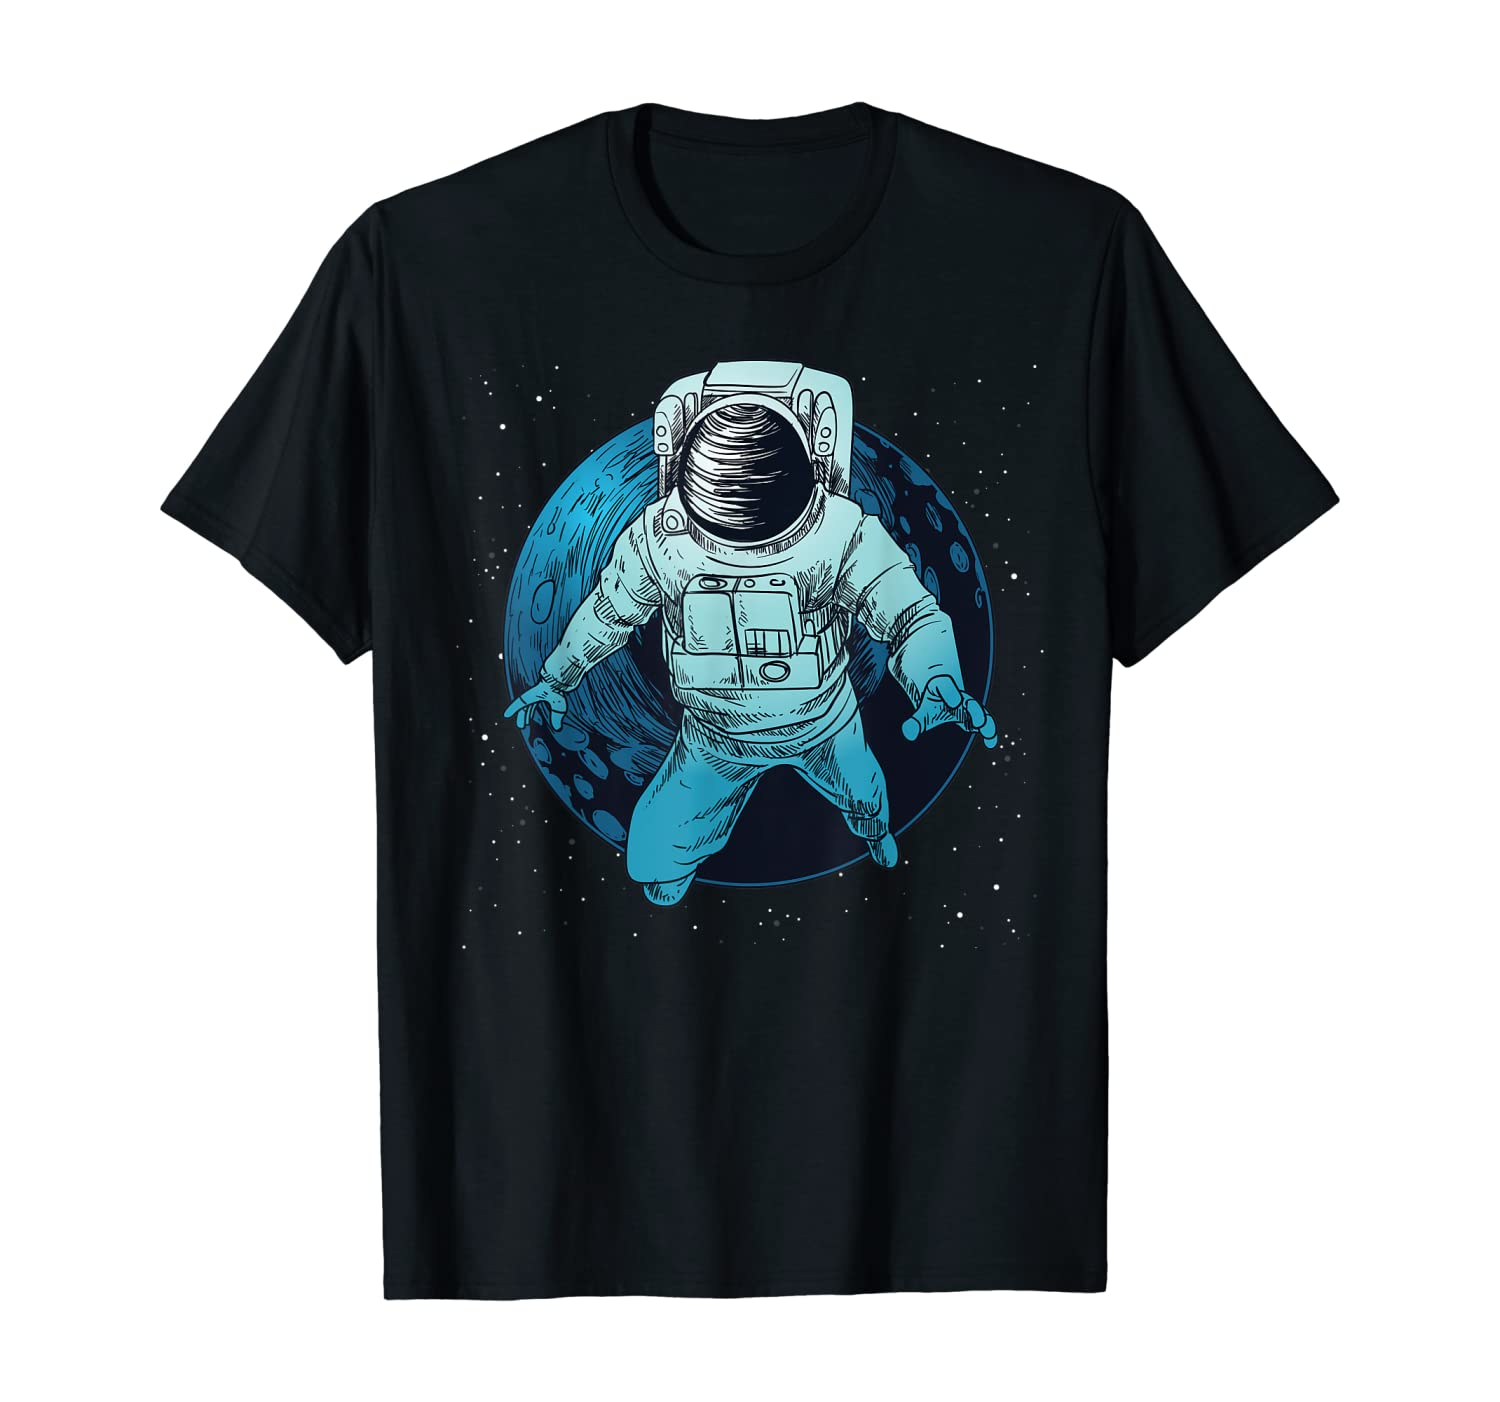 Space Astronaut Graphic Tees - Space Lost, Space Astronaut T-Shirt